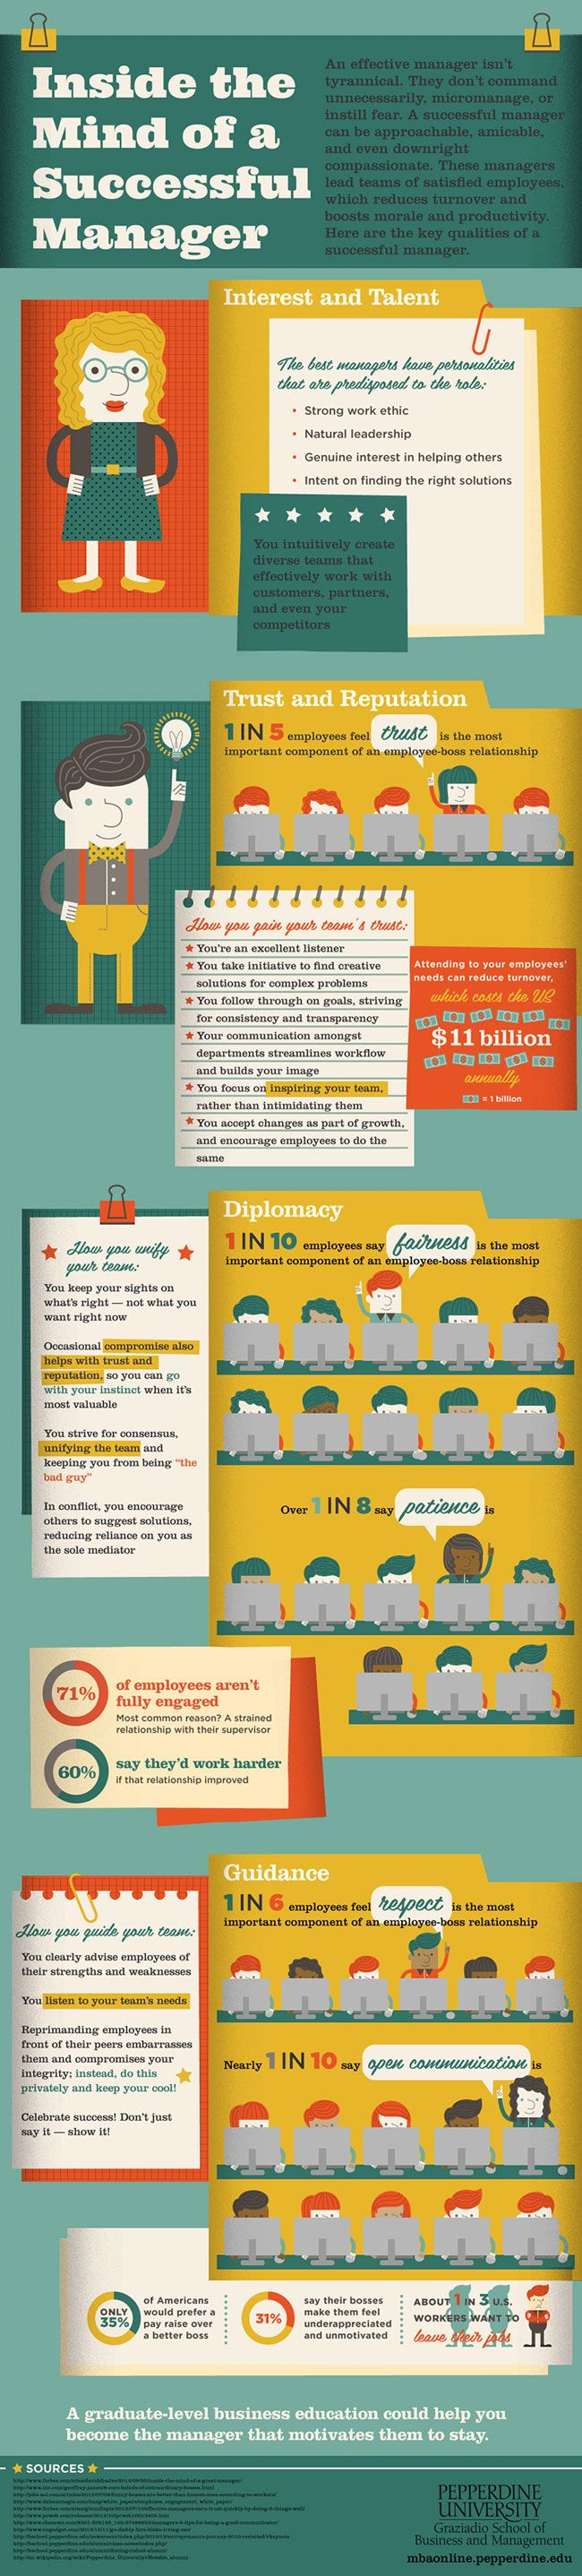 "[INFOGRAPHIC] Inside the Mind of a Successful Manager.  A successful manager feels secure in their role and recognized for their contributions, according to Vince Thompson, author of ""Ignited: Managers Light Up Your Company and Career!""  ""They know how to lead in a limited space and they know how to help their people be great. They also know how to take their unique perspective and unique role within their company and apply it to reach their highest purpose,"" he says."